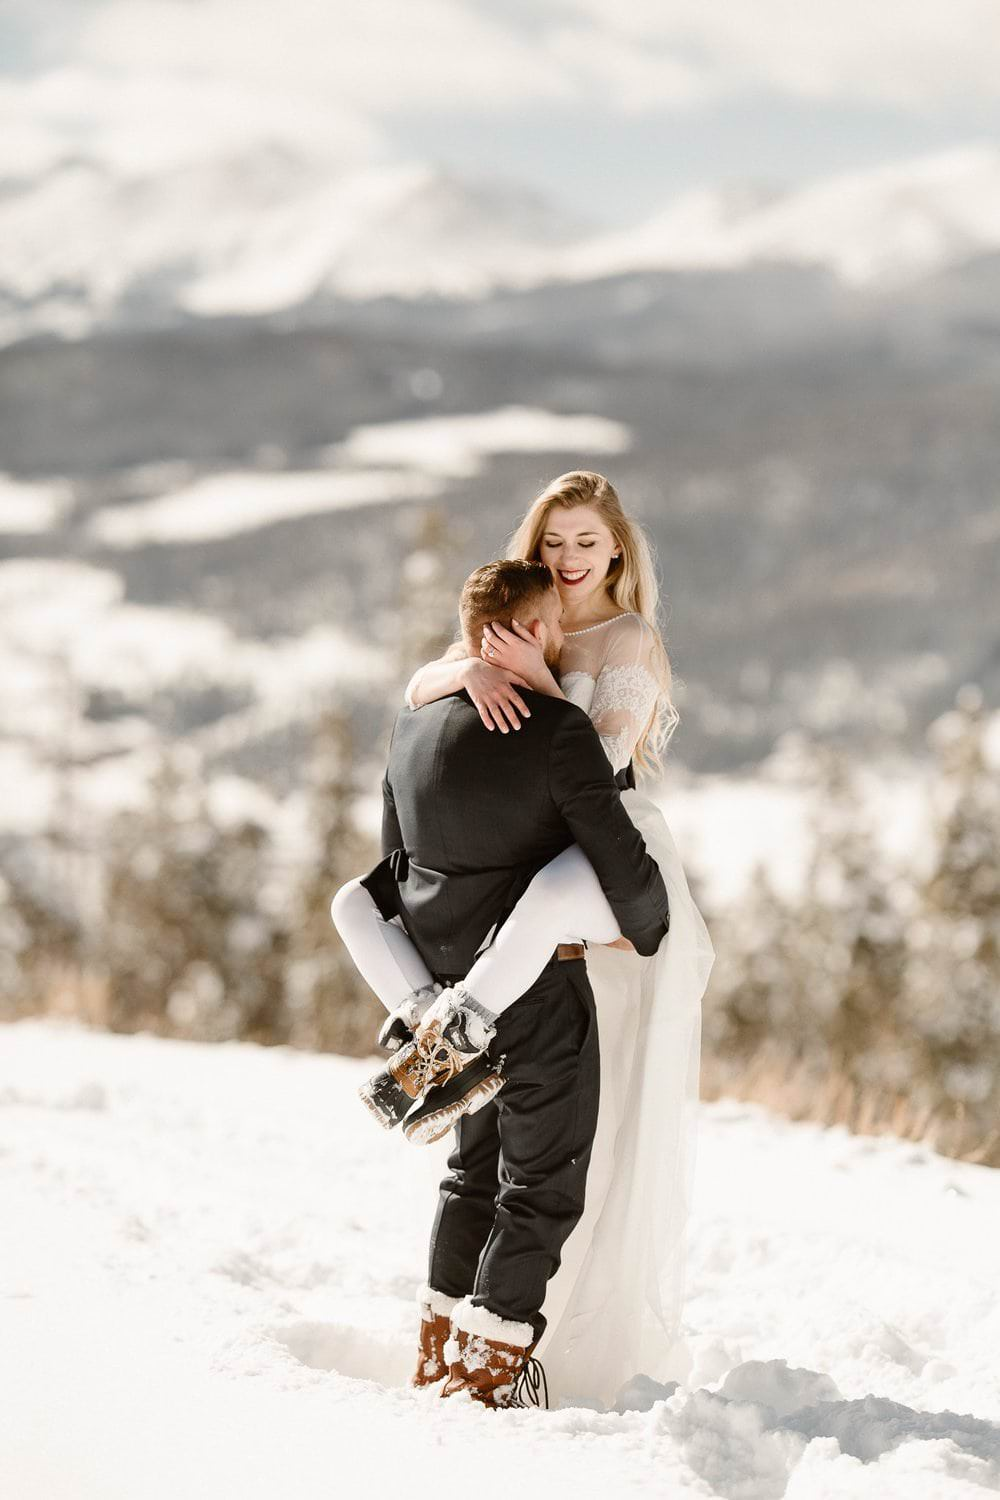 ADVENTURE ELOPEMENT PHOTOGRAPHER|COLORADO ADVENTURE PHOTOGRAPHY|JUSTYNA E BUTLER|ROCKY MOUNTAIN NATIONAL PARK HIKING ELOPEMENTS|Colorado Intimate Weddings+Adventure Elopements|Rocky Mountain Adventure Weddings|ROCKY MOUNTAIN NATIONAL PARK HIKING ELOPEMENTS AND WEDDINGS|ADVENTURE ELOPEMENTS|COLORADO MOUNTAIN WEDDING PHOTOGRAPHER|MOUNTAIN INTIMATE WEDDINGS|SELF -SOLEMNIZING ELOPEMENT PHOTOGRAPHER |DESTINATION WEDDING PHOTOGRAPHER|JUSTYNA E BUTLER PHOTOGRAPHY|ADVENTURE HIKING ELOPEMENT PHOTOGRAPHER | CREATIVE WEDDING PHOTOGRAPHY FOR ADVENTUROUS COUPLES